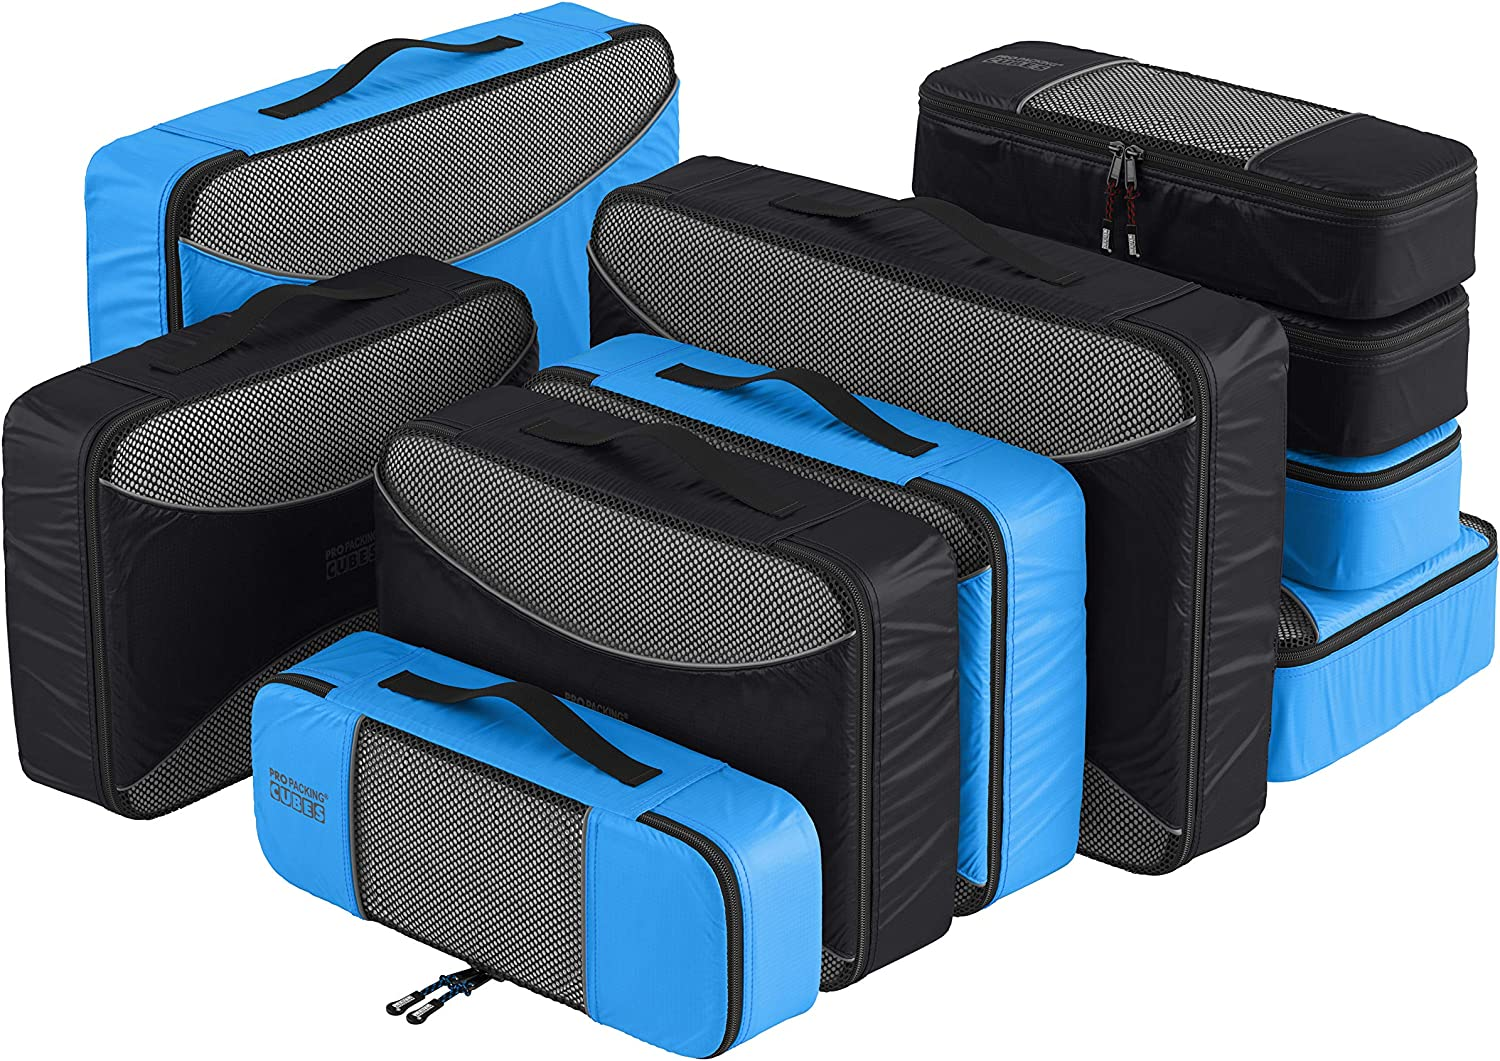 PRO Packing Sales of SALE items from new works Cubes for Popularity Travel Set Piece Luggage 10 Organizer